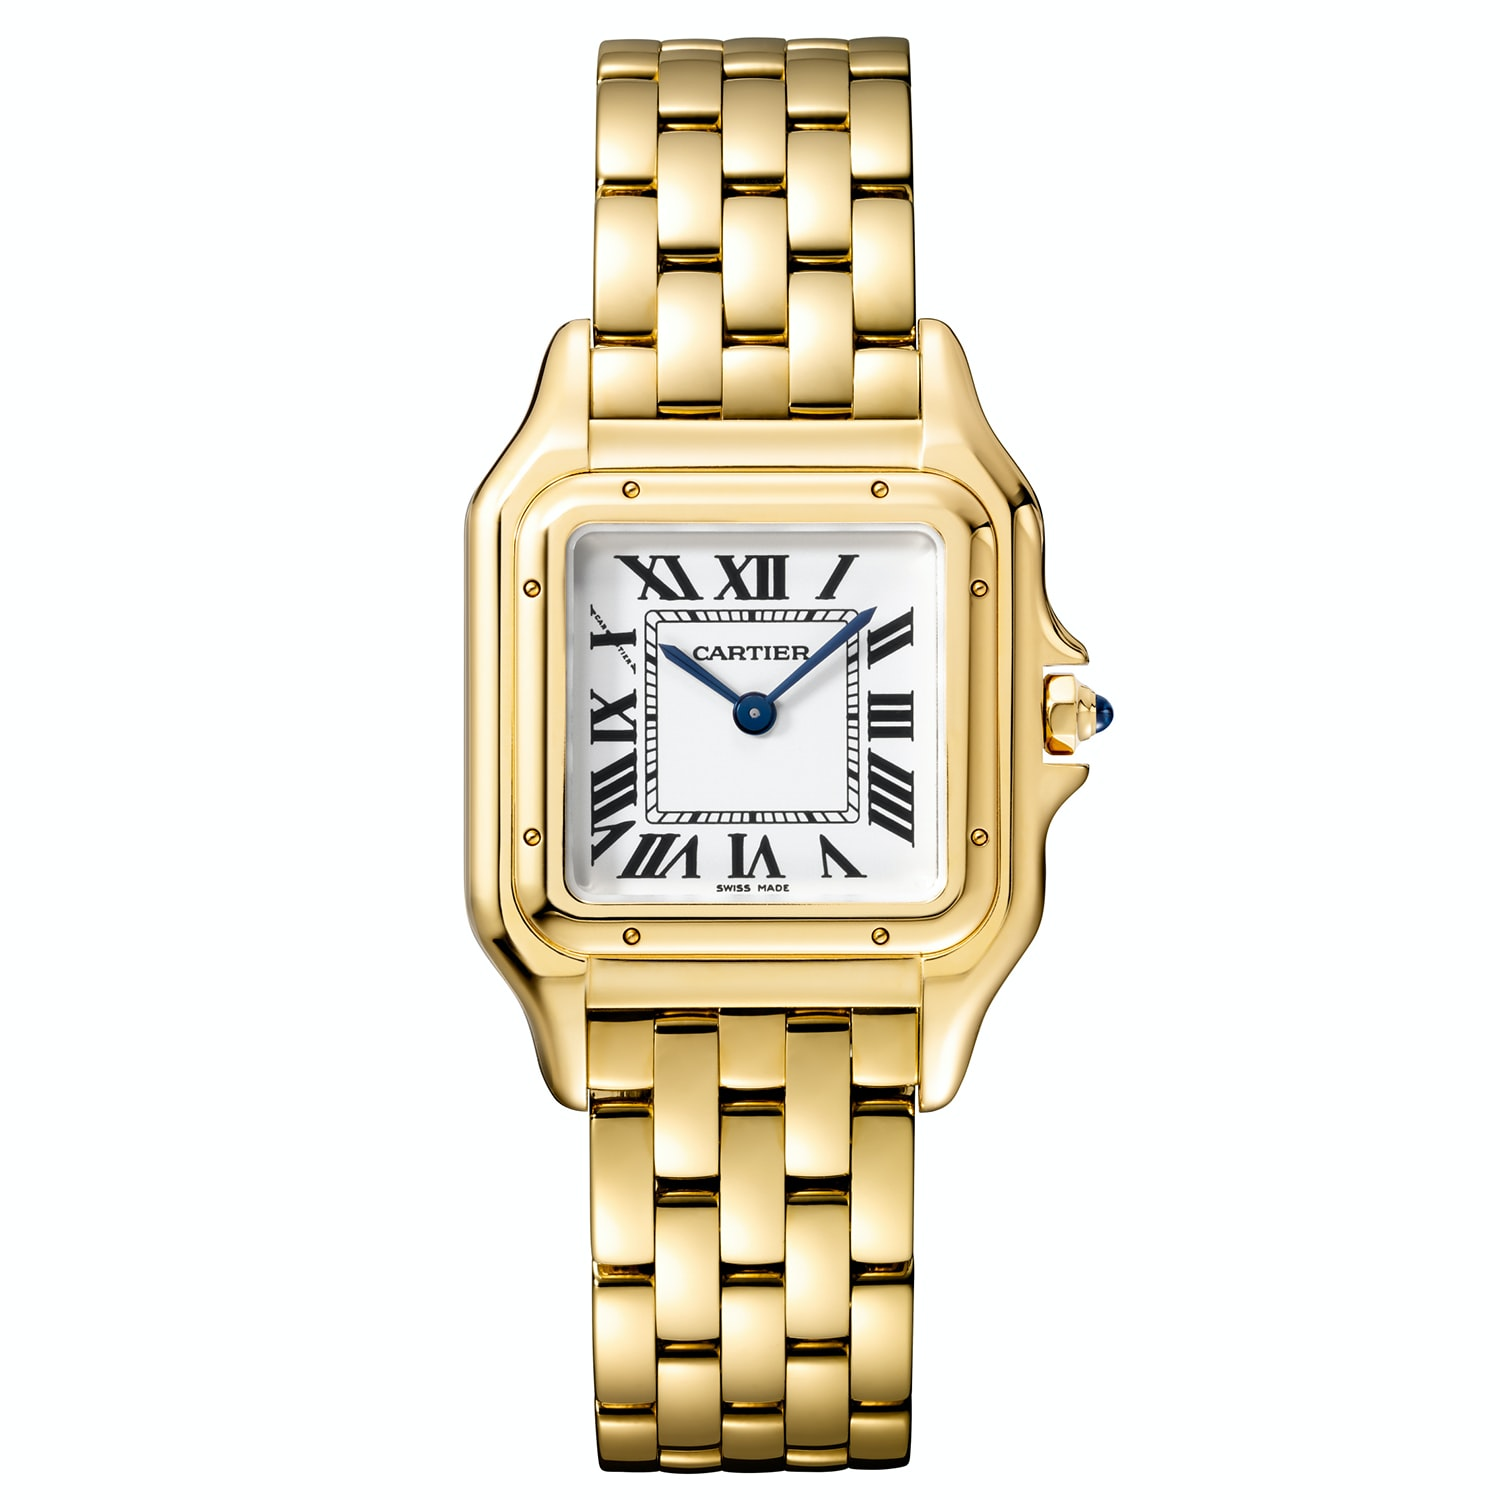 Panthère De Cartier yellow gold medium Introducing: The Cartier Panthère De Cartier Collection, Re-Introduced For 2017 Introducing: The Cartier Panthère De Cartier Collection, Re-Introduced For 2017 aaaaannnnn